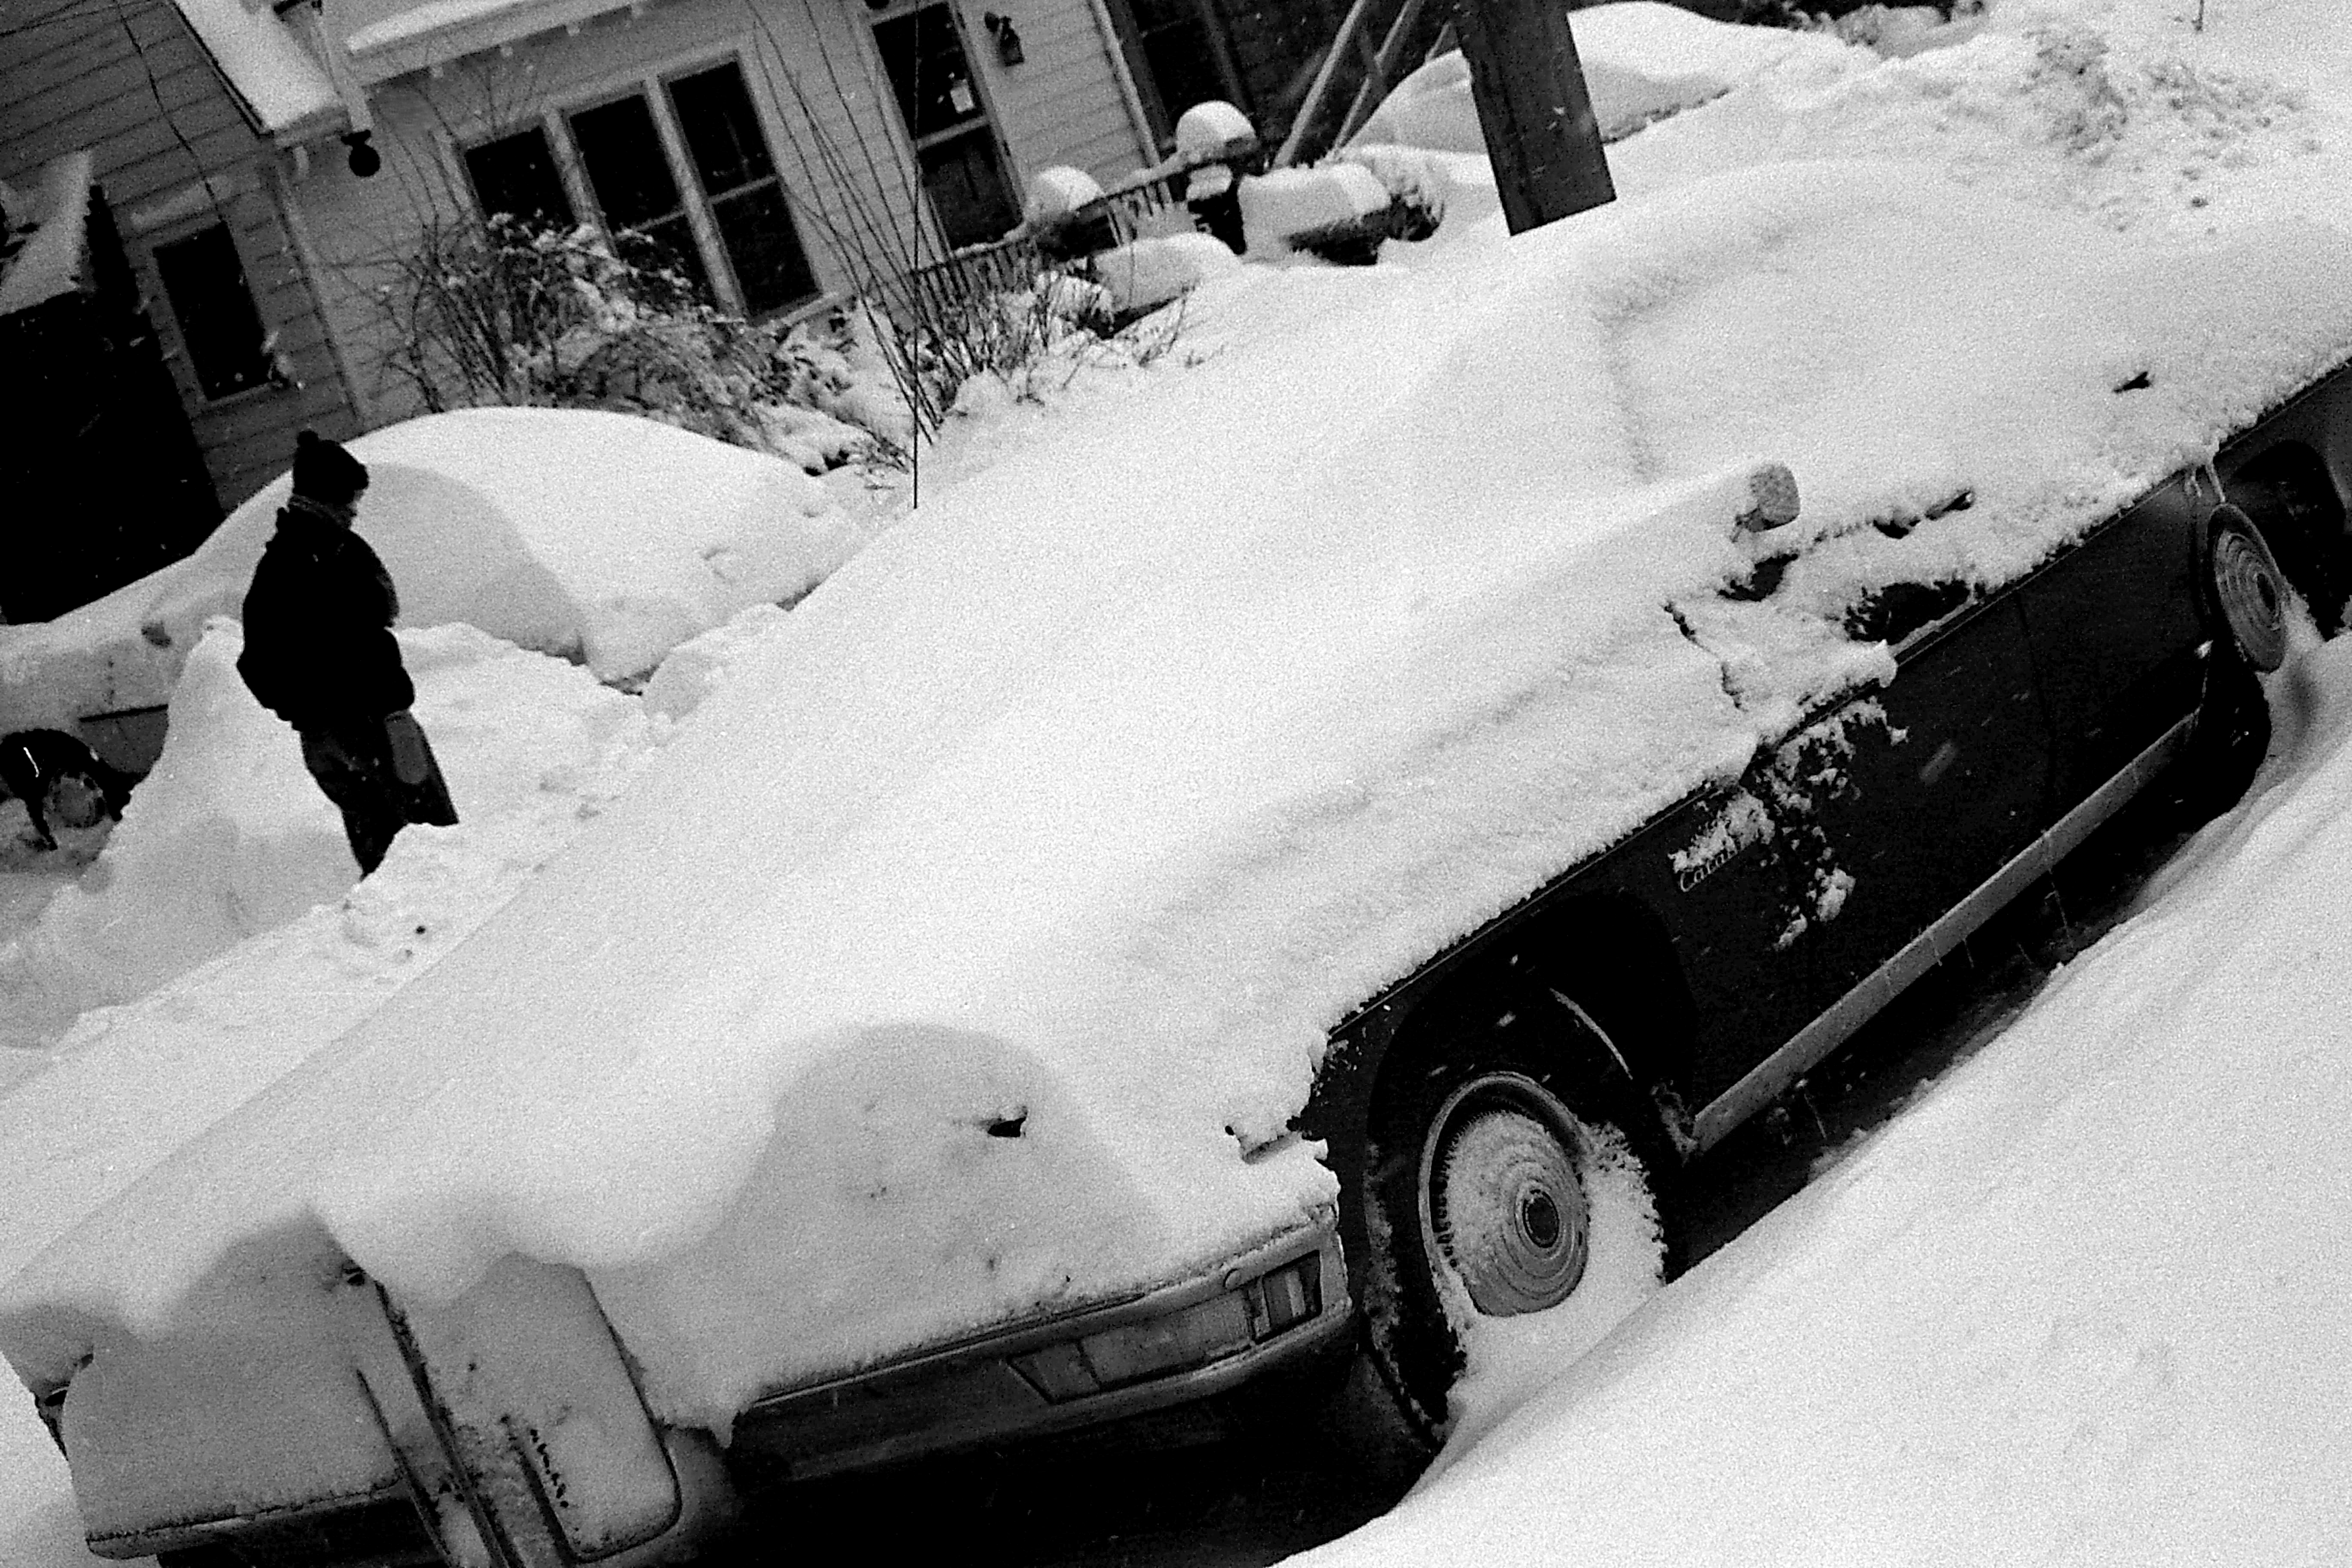 Pontiac Catalina Covered In Snow, The Great Blizzard, January 1978 image